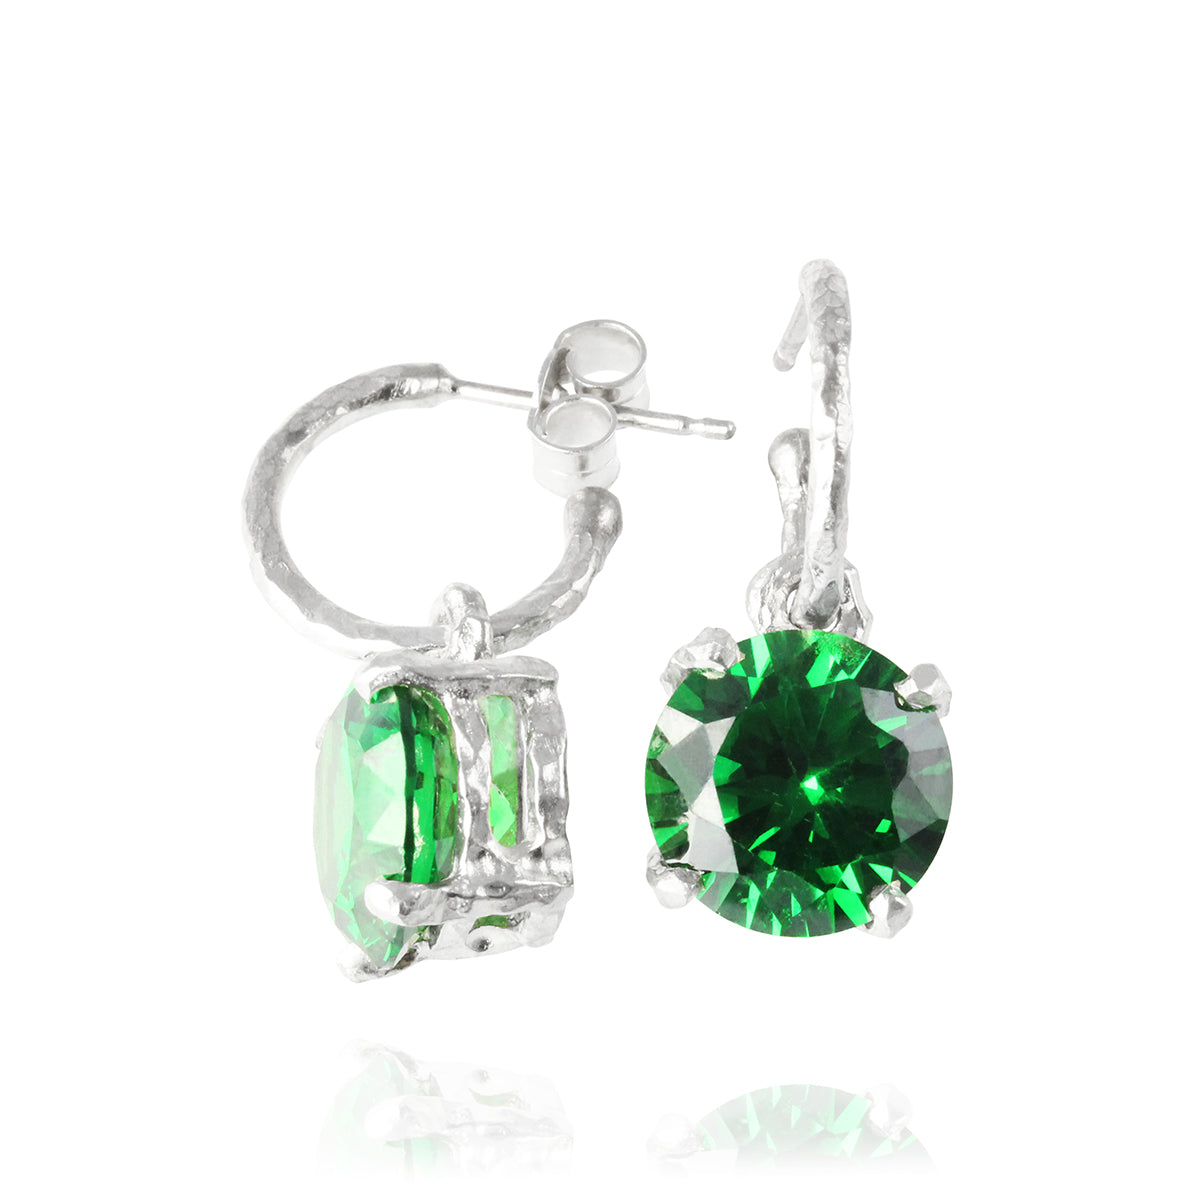 Earring in sterling silver on hoop set  with green coloured cubic zirconia. - Paul Magen